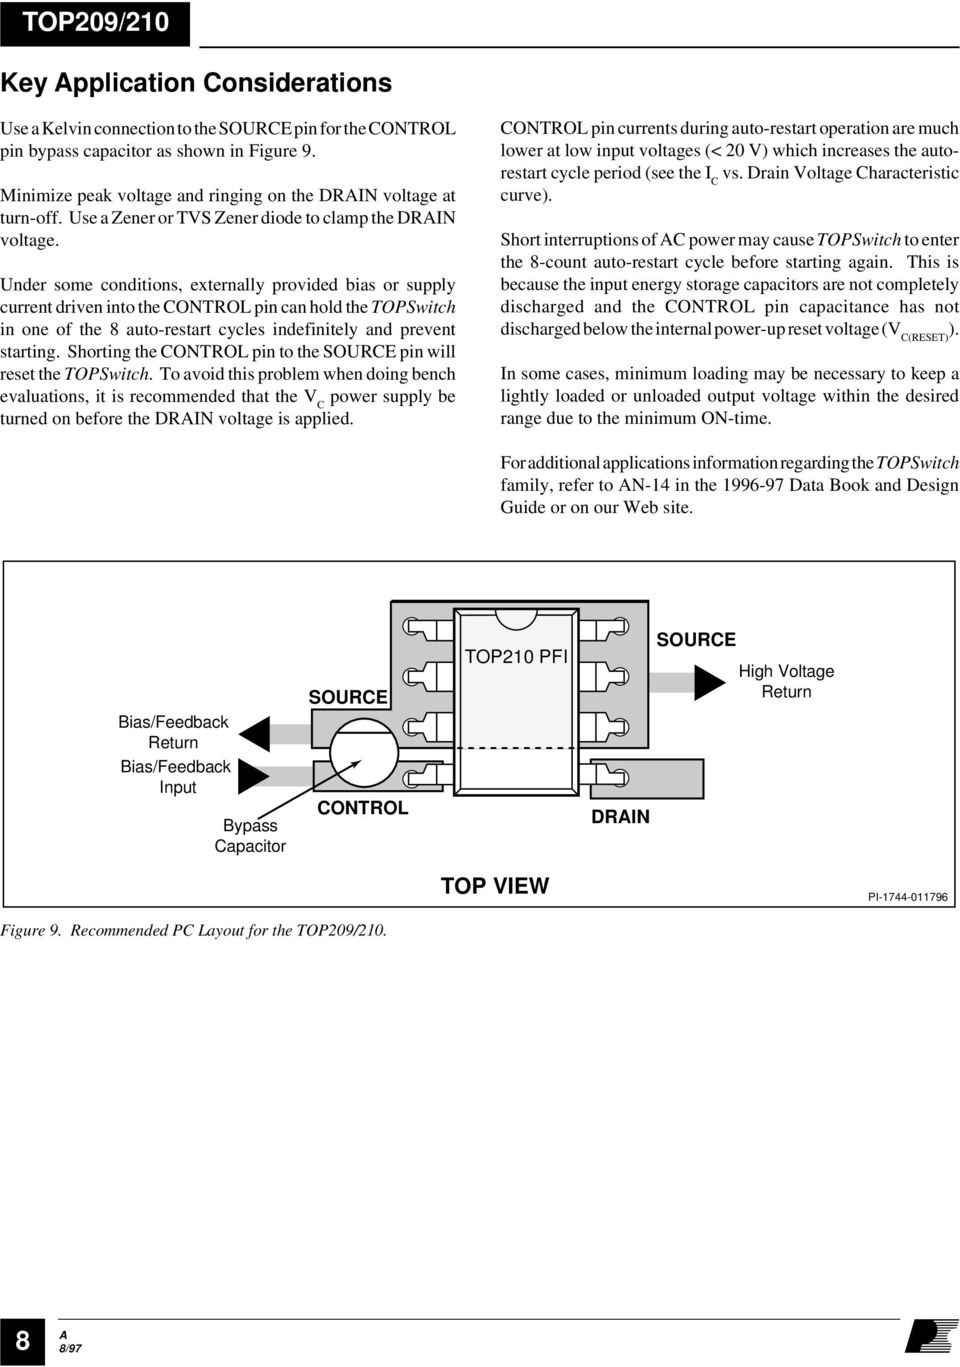 Top209 210 Topswitch Family Three Terminal Off Line Pwm Switch Pdf Offline Supply Drives Leds Figure 1 Under Some Conditions Externally Provided Bias Or Current Driven Into The Control Pin Can